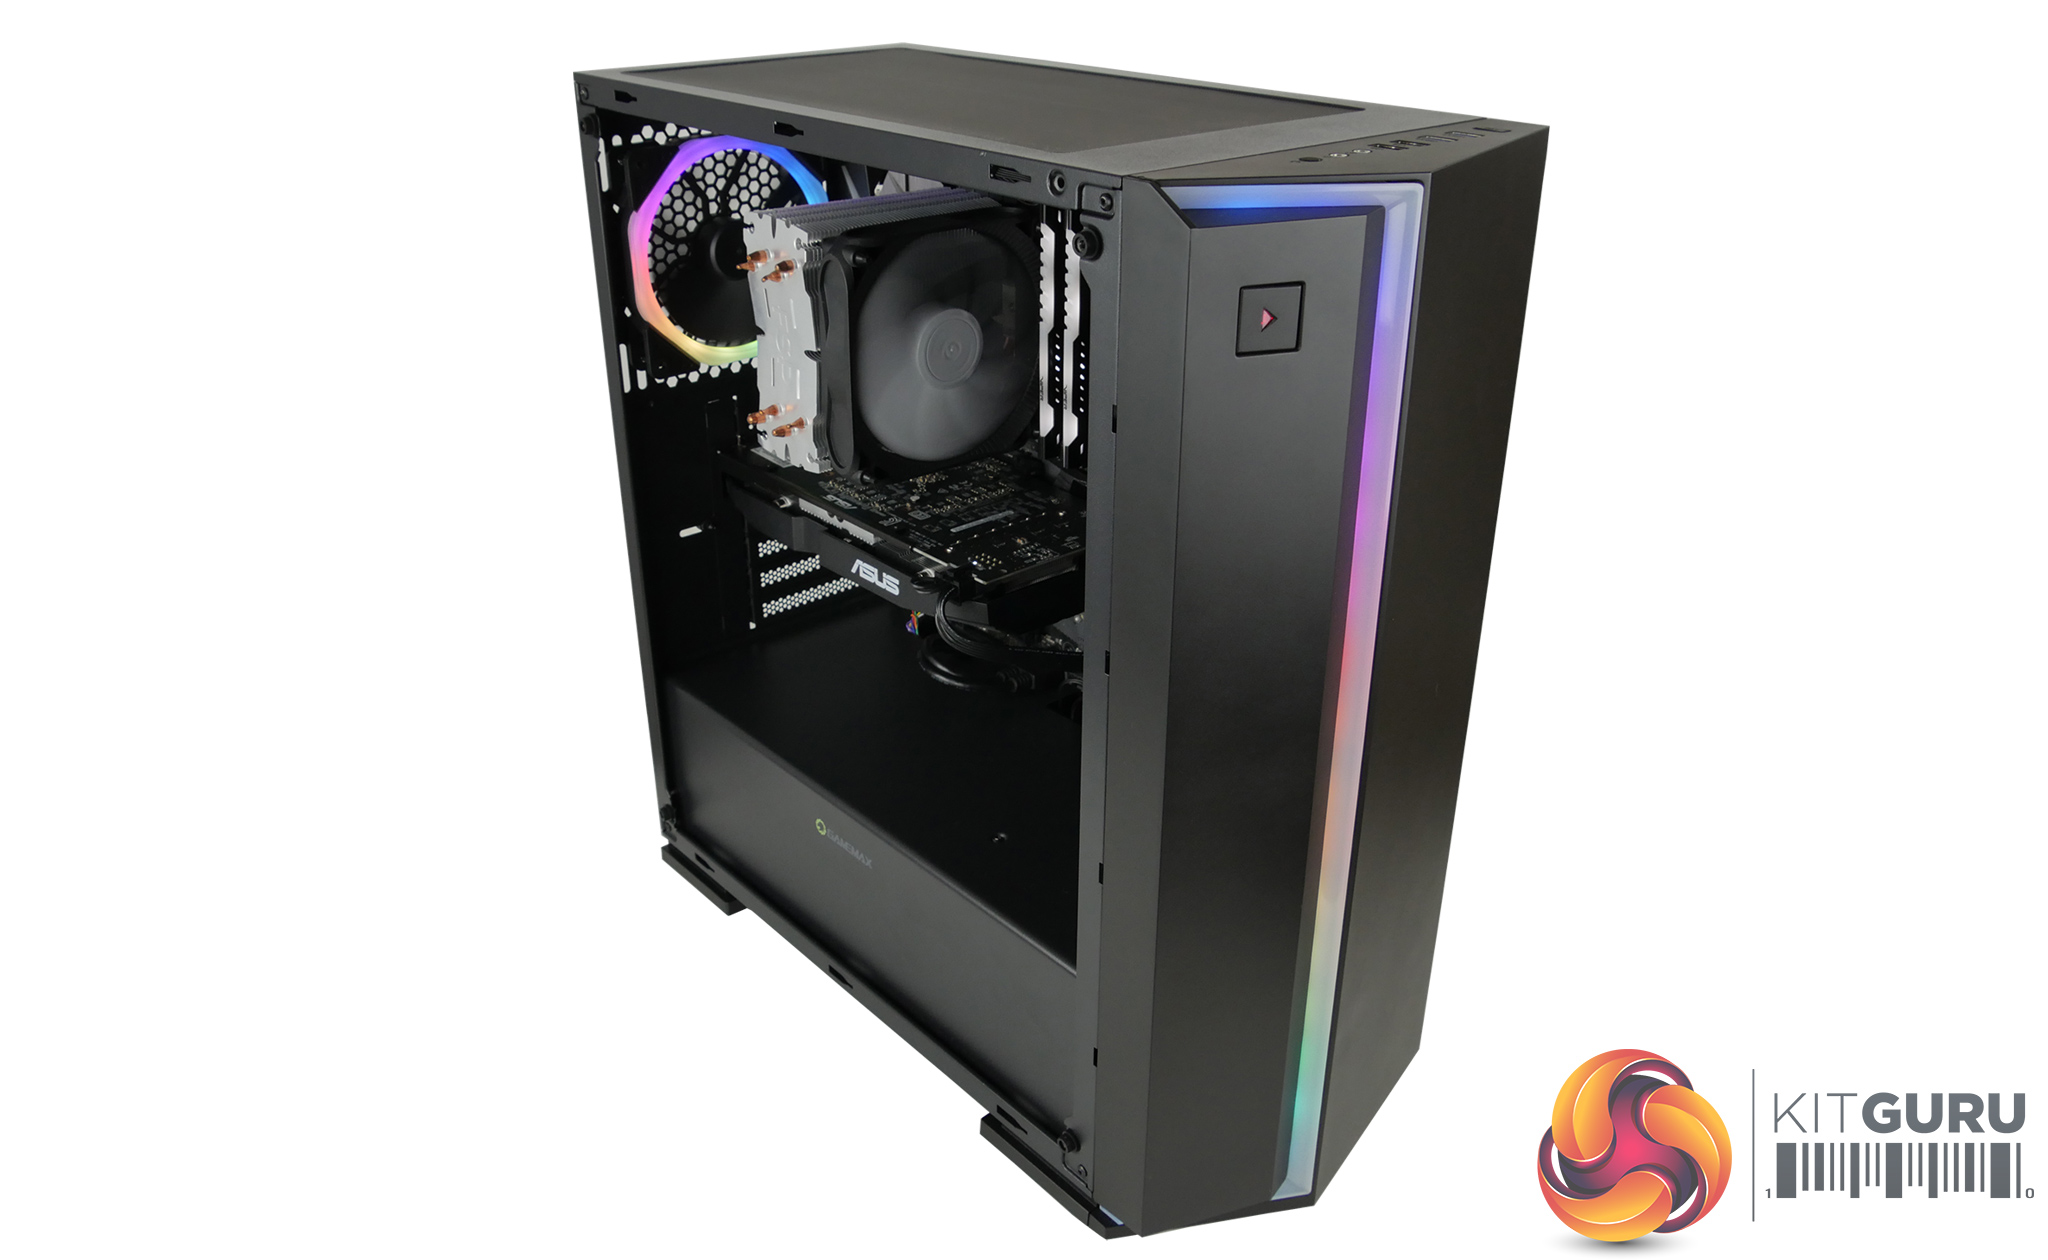 Case Pc Gamemax Starlight Pc Case 51 For All This Kitguru